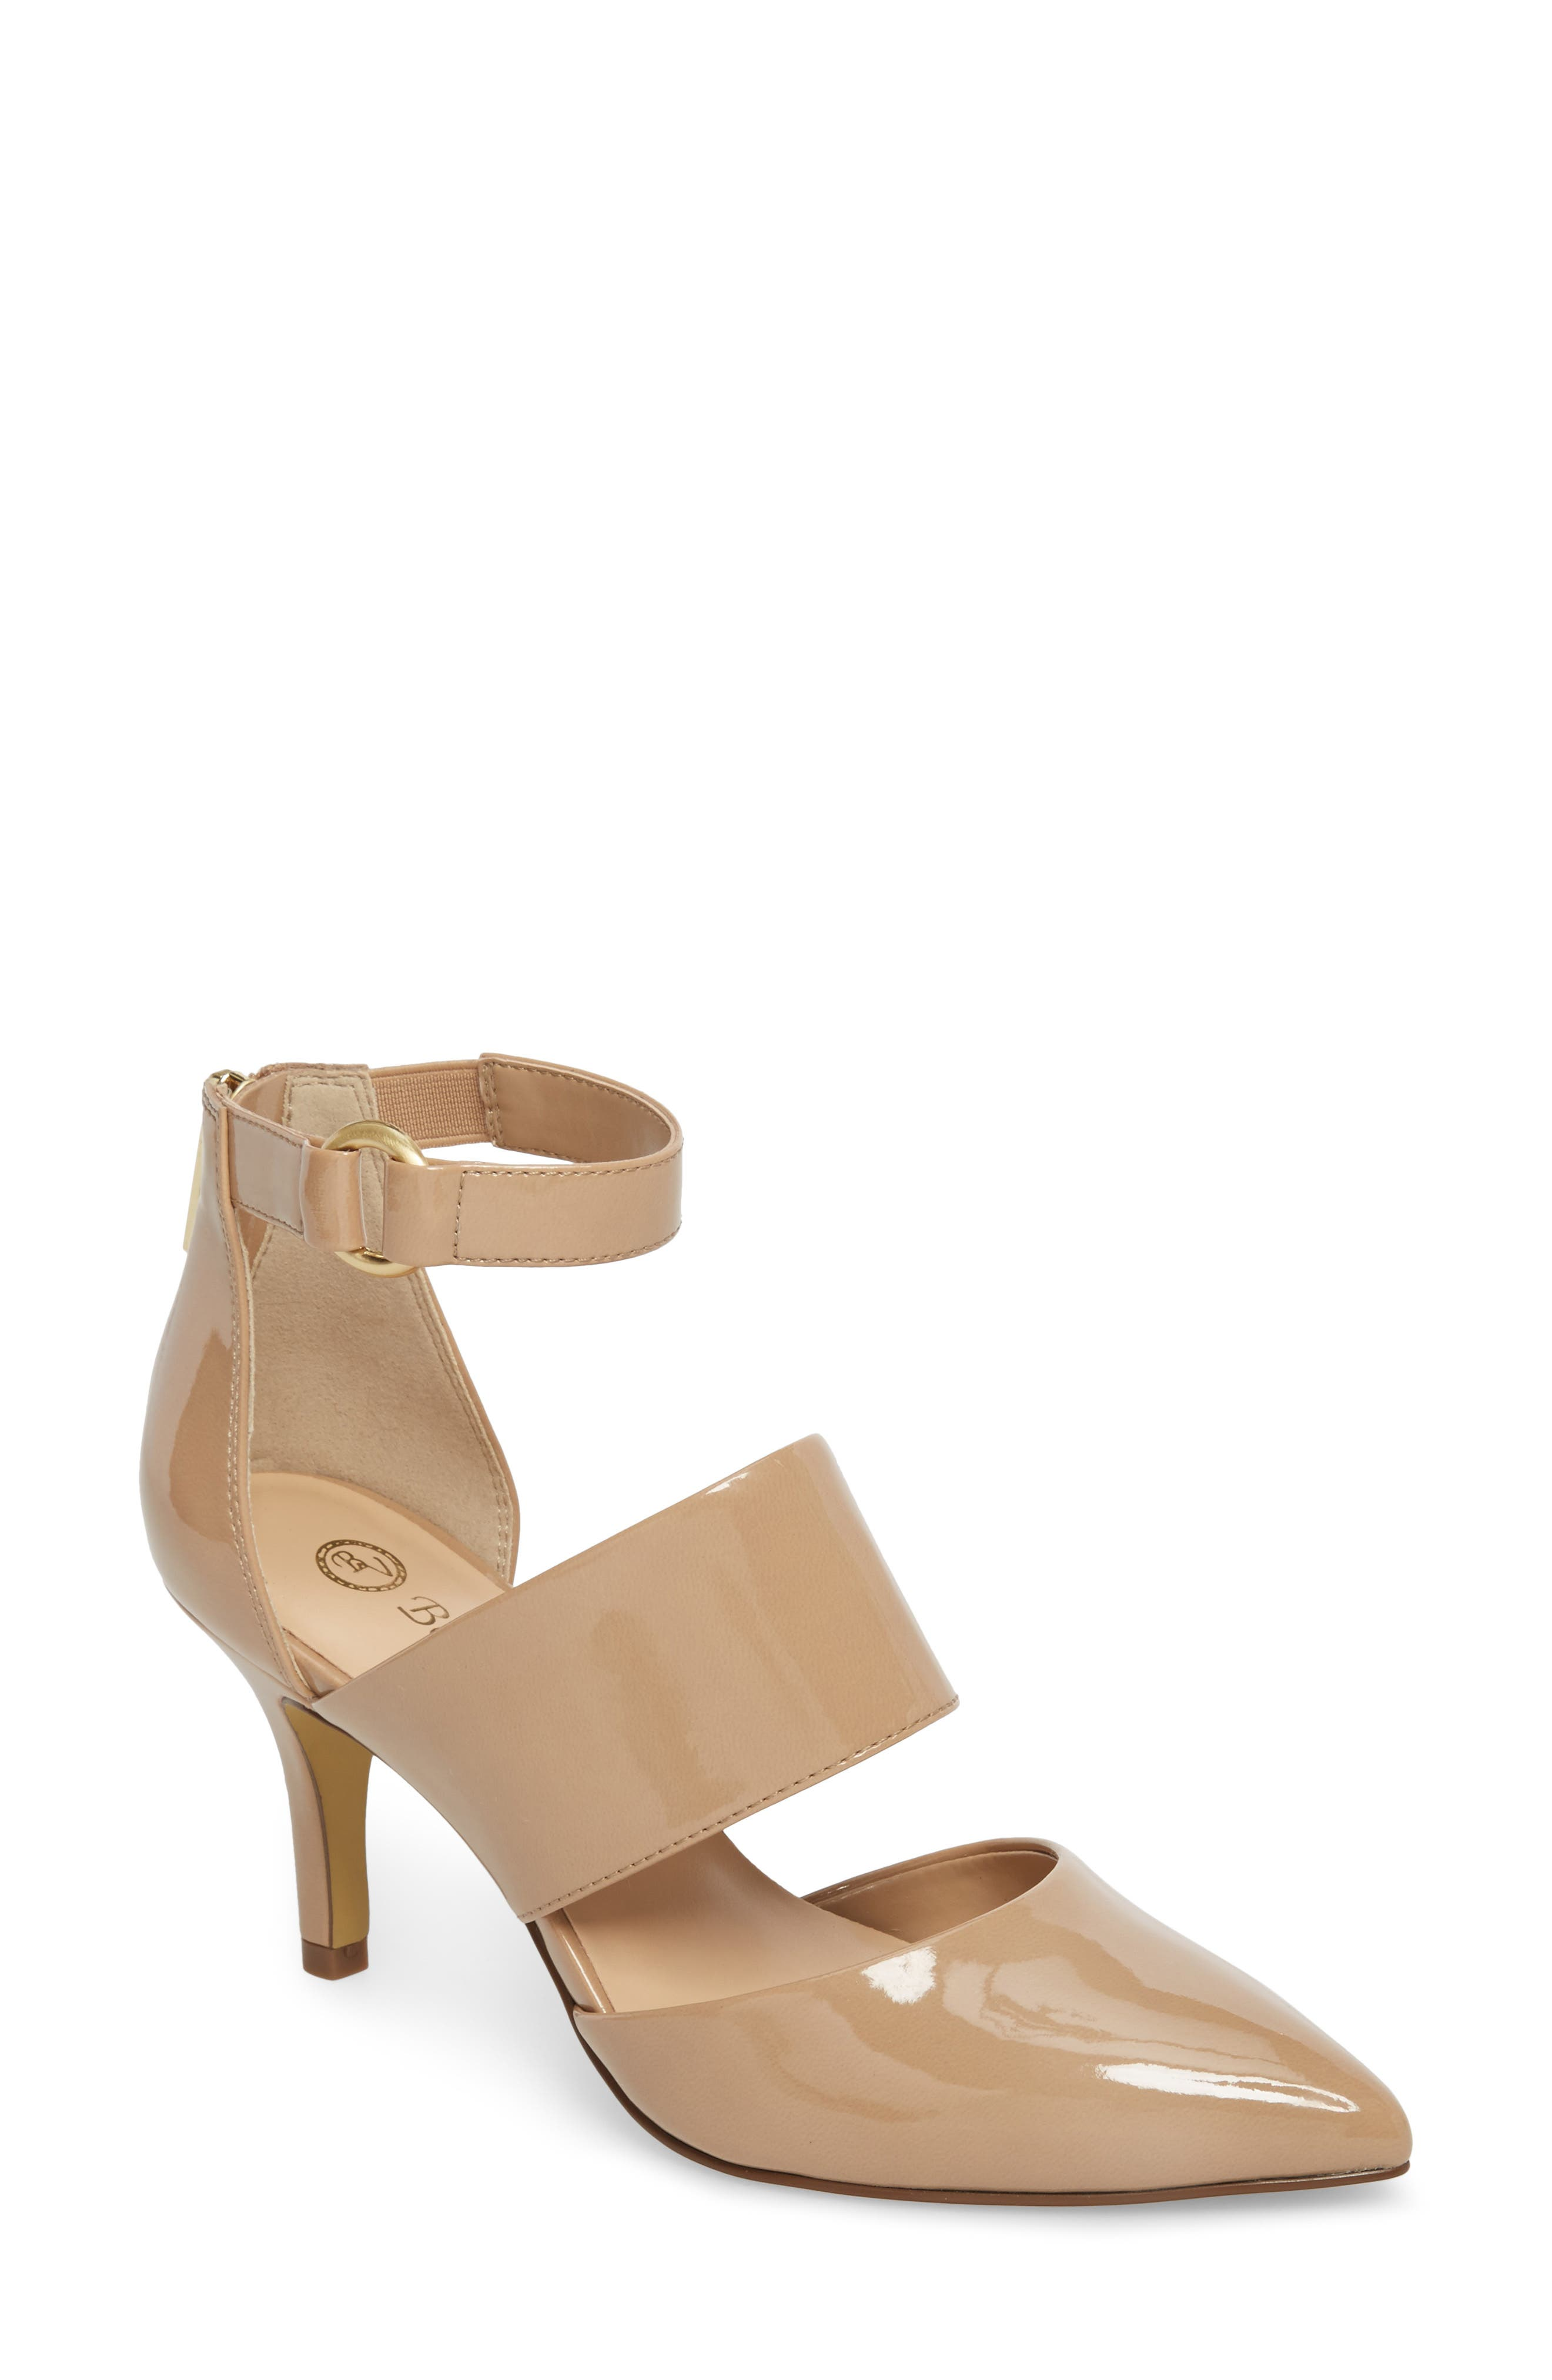 Diana II Pump,                             Main thumbnail 1, color,                             Nude Patent